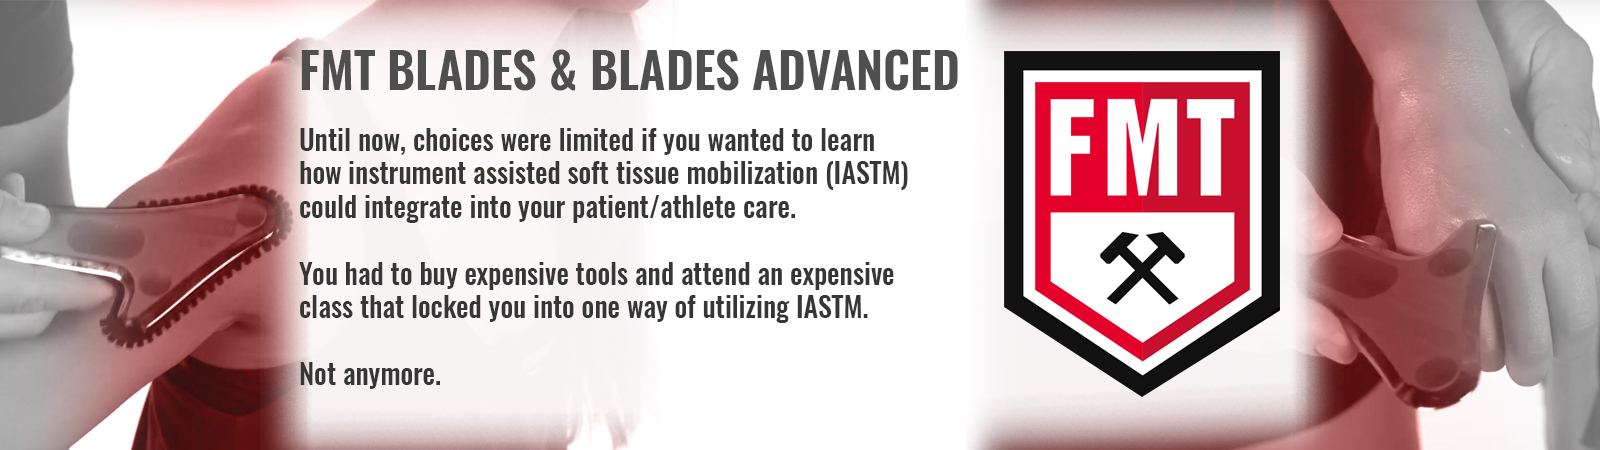 FMT Blades and Blades Advanced